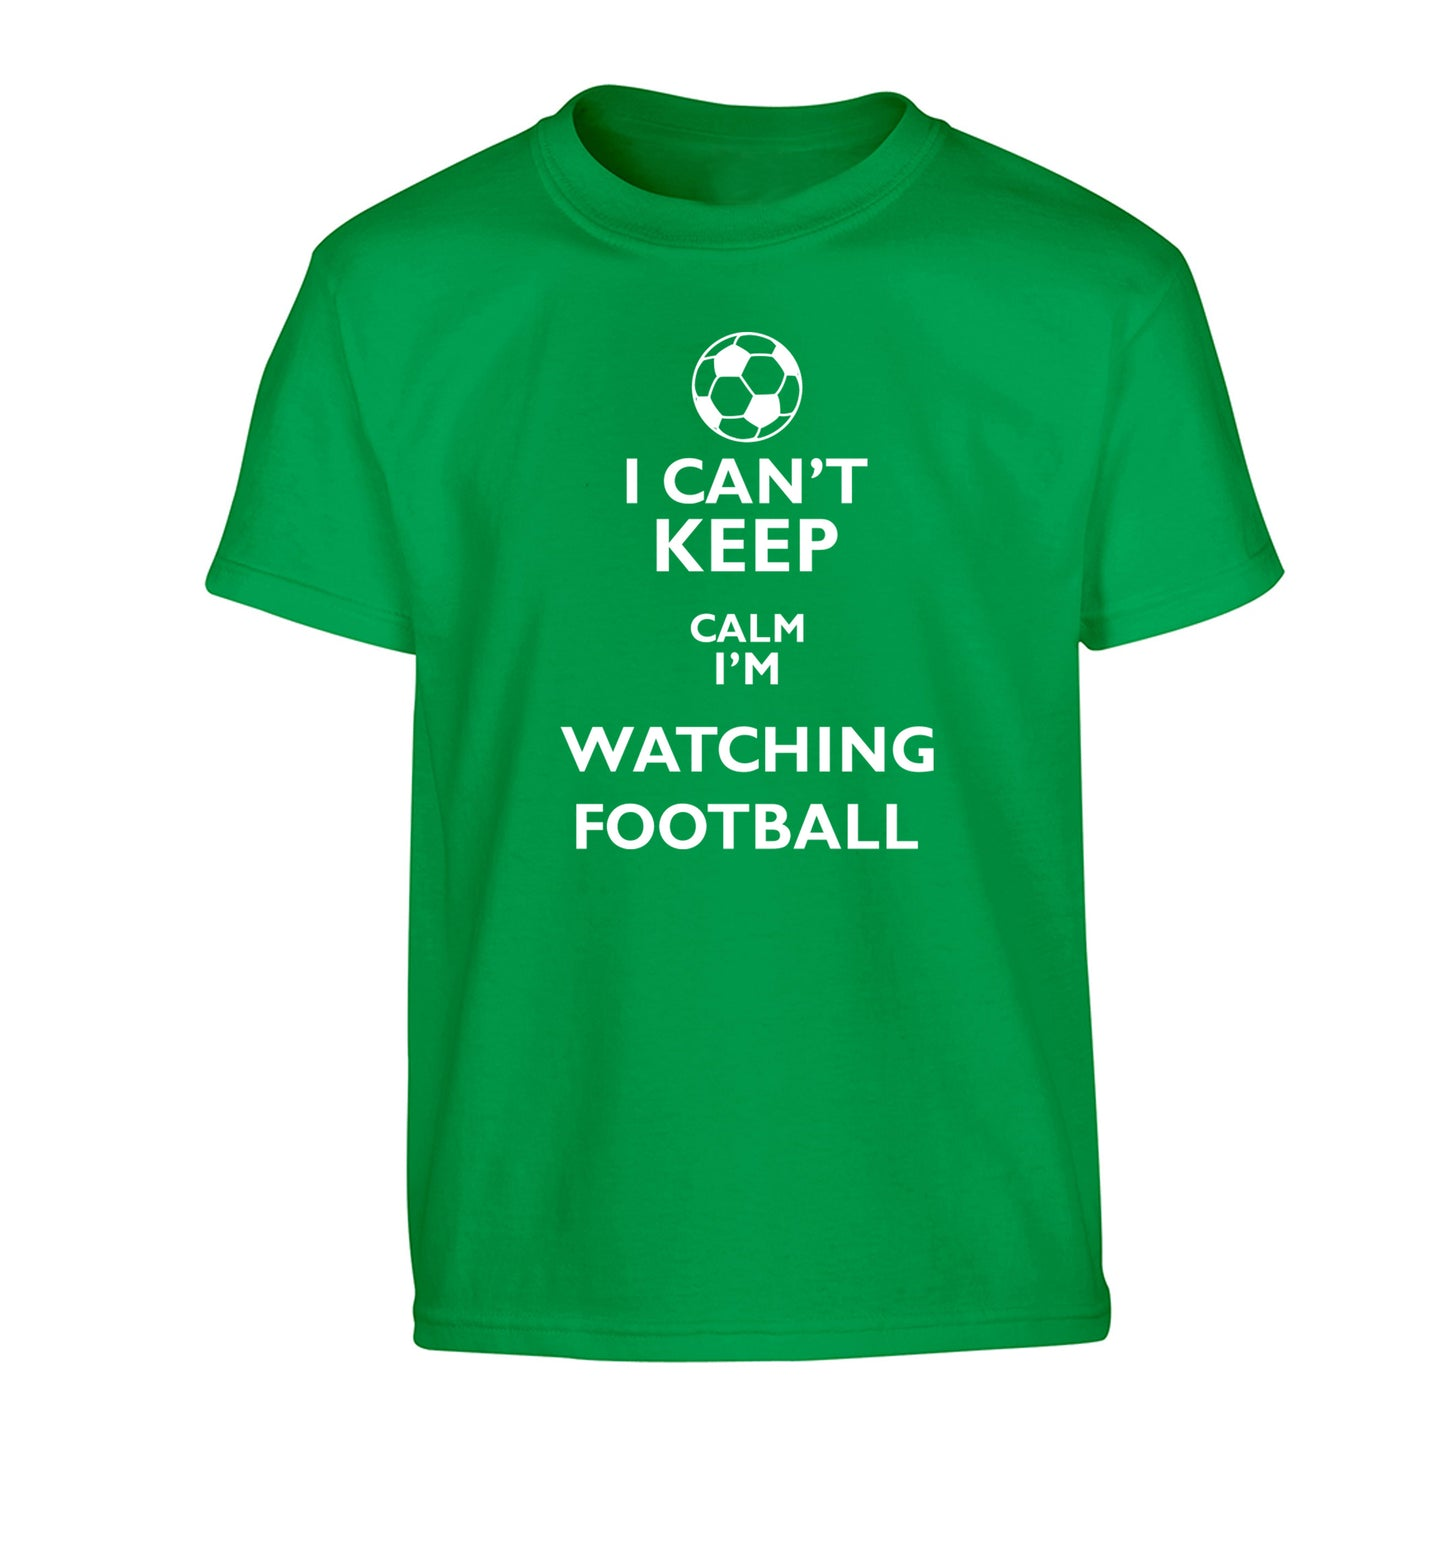 I can't keep calm I'm watching the football Children's green Tshirt 12-14 Years